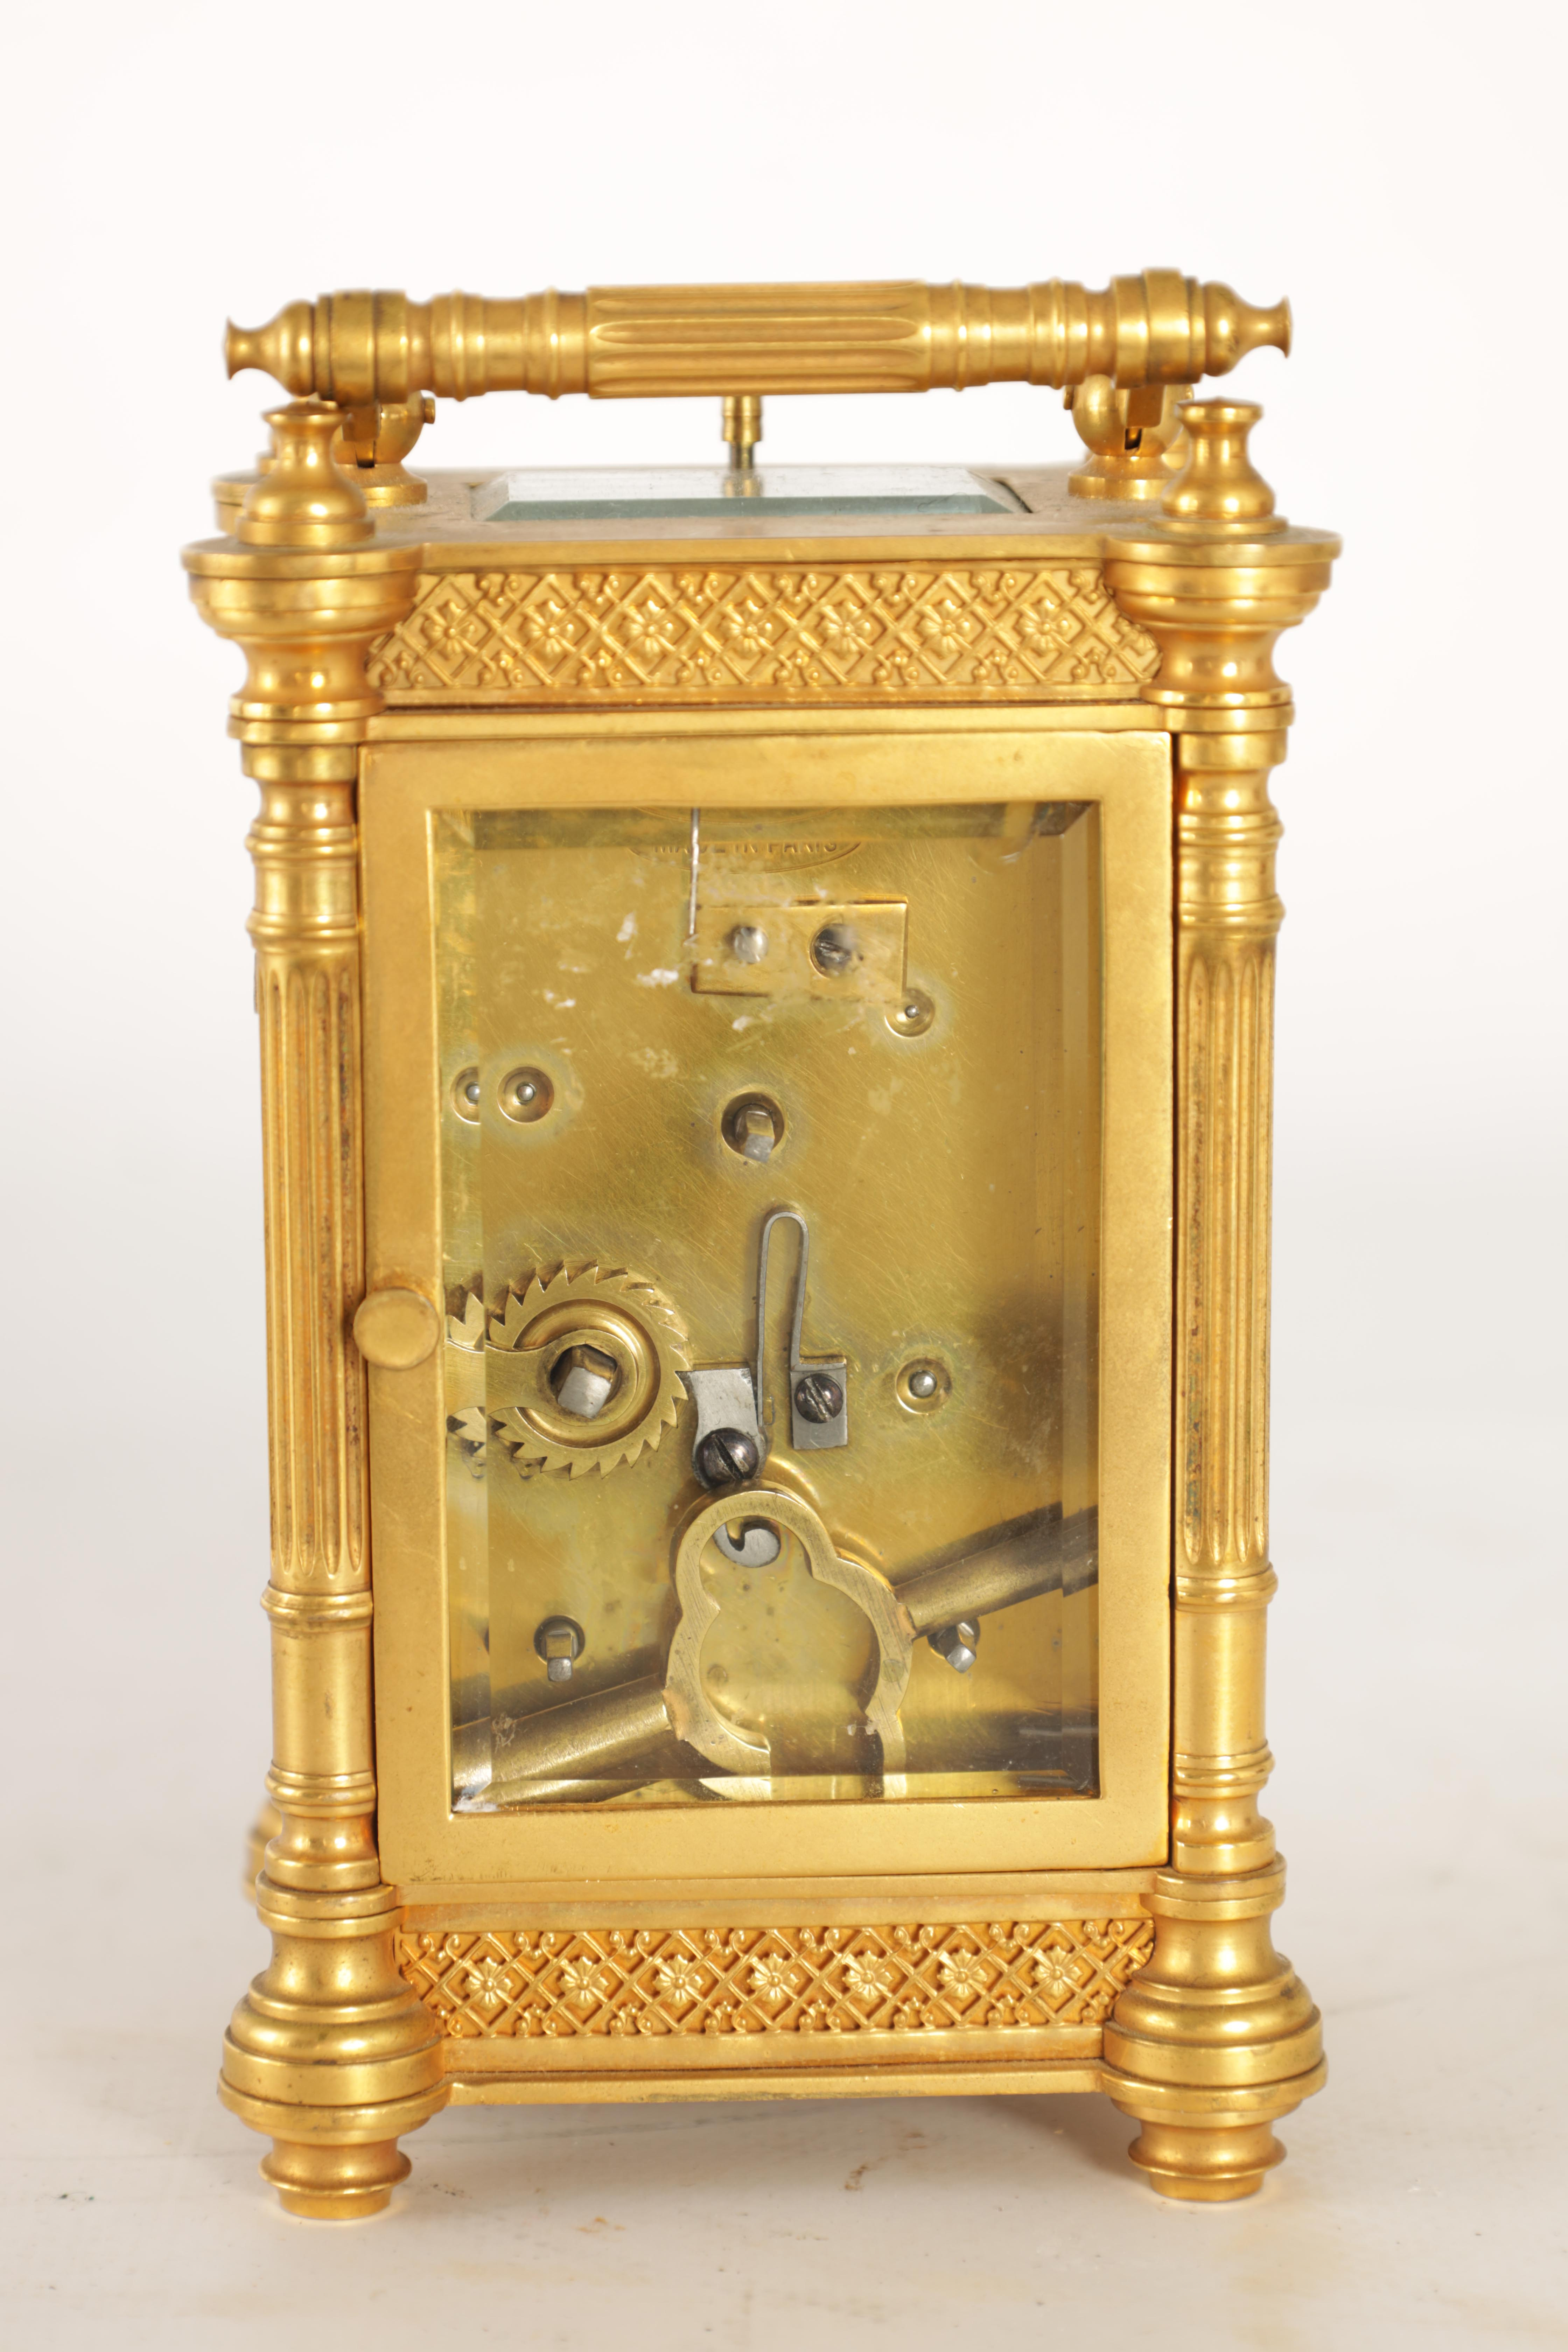 A LATE 19TH CENTURY FRENCH BRASS CARRIAGE CLOCK WITH CALENDAR the gilt case with pierced frieze - Image 4 of 6